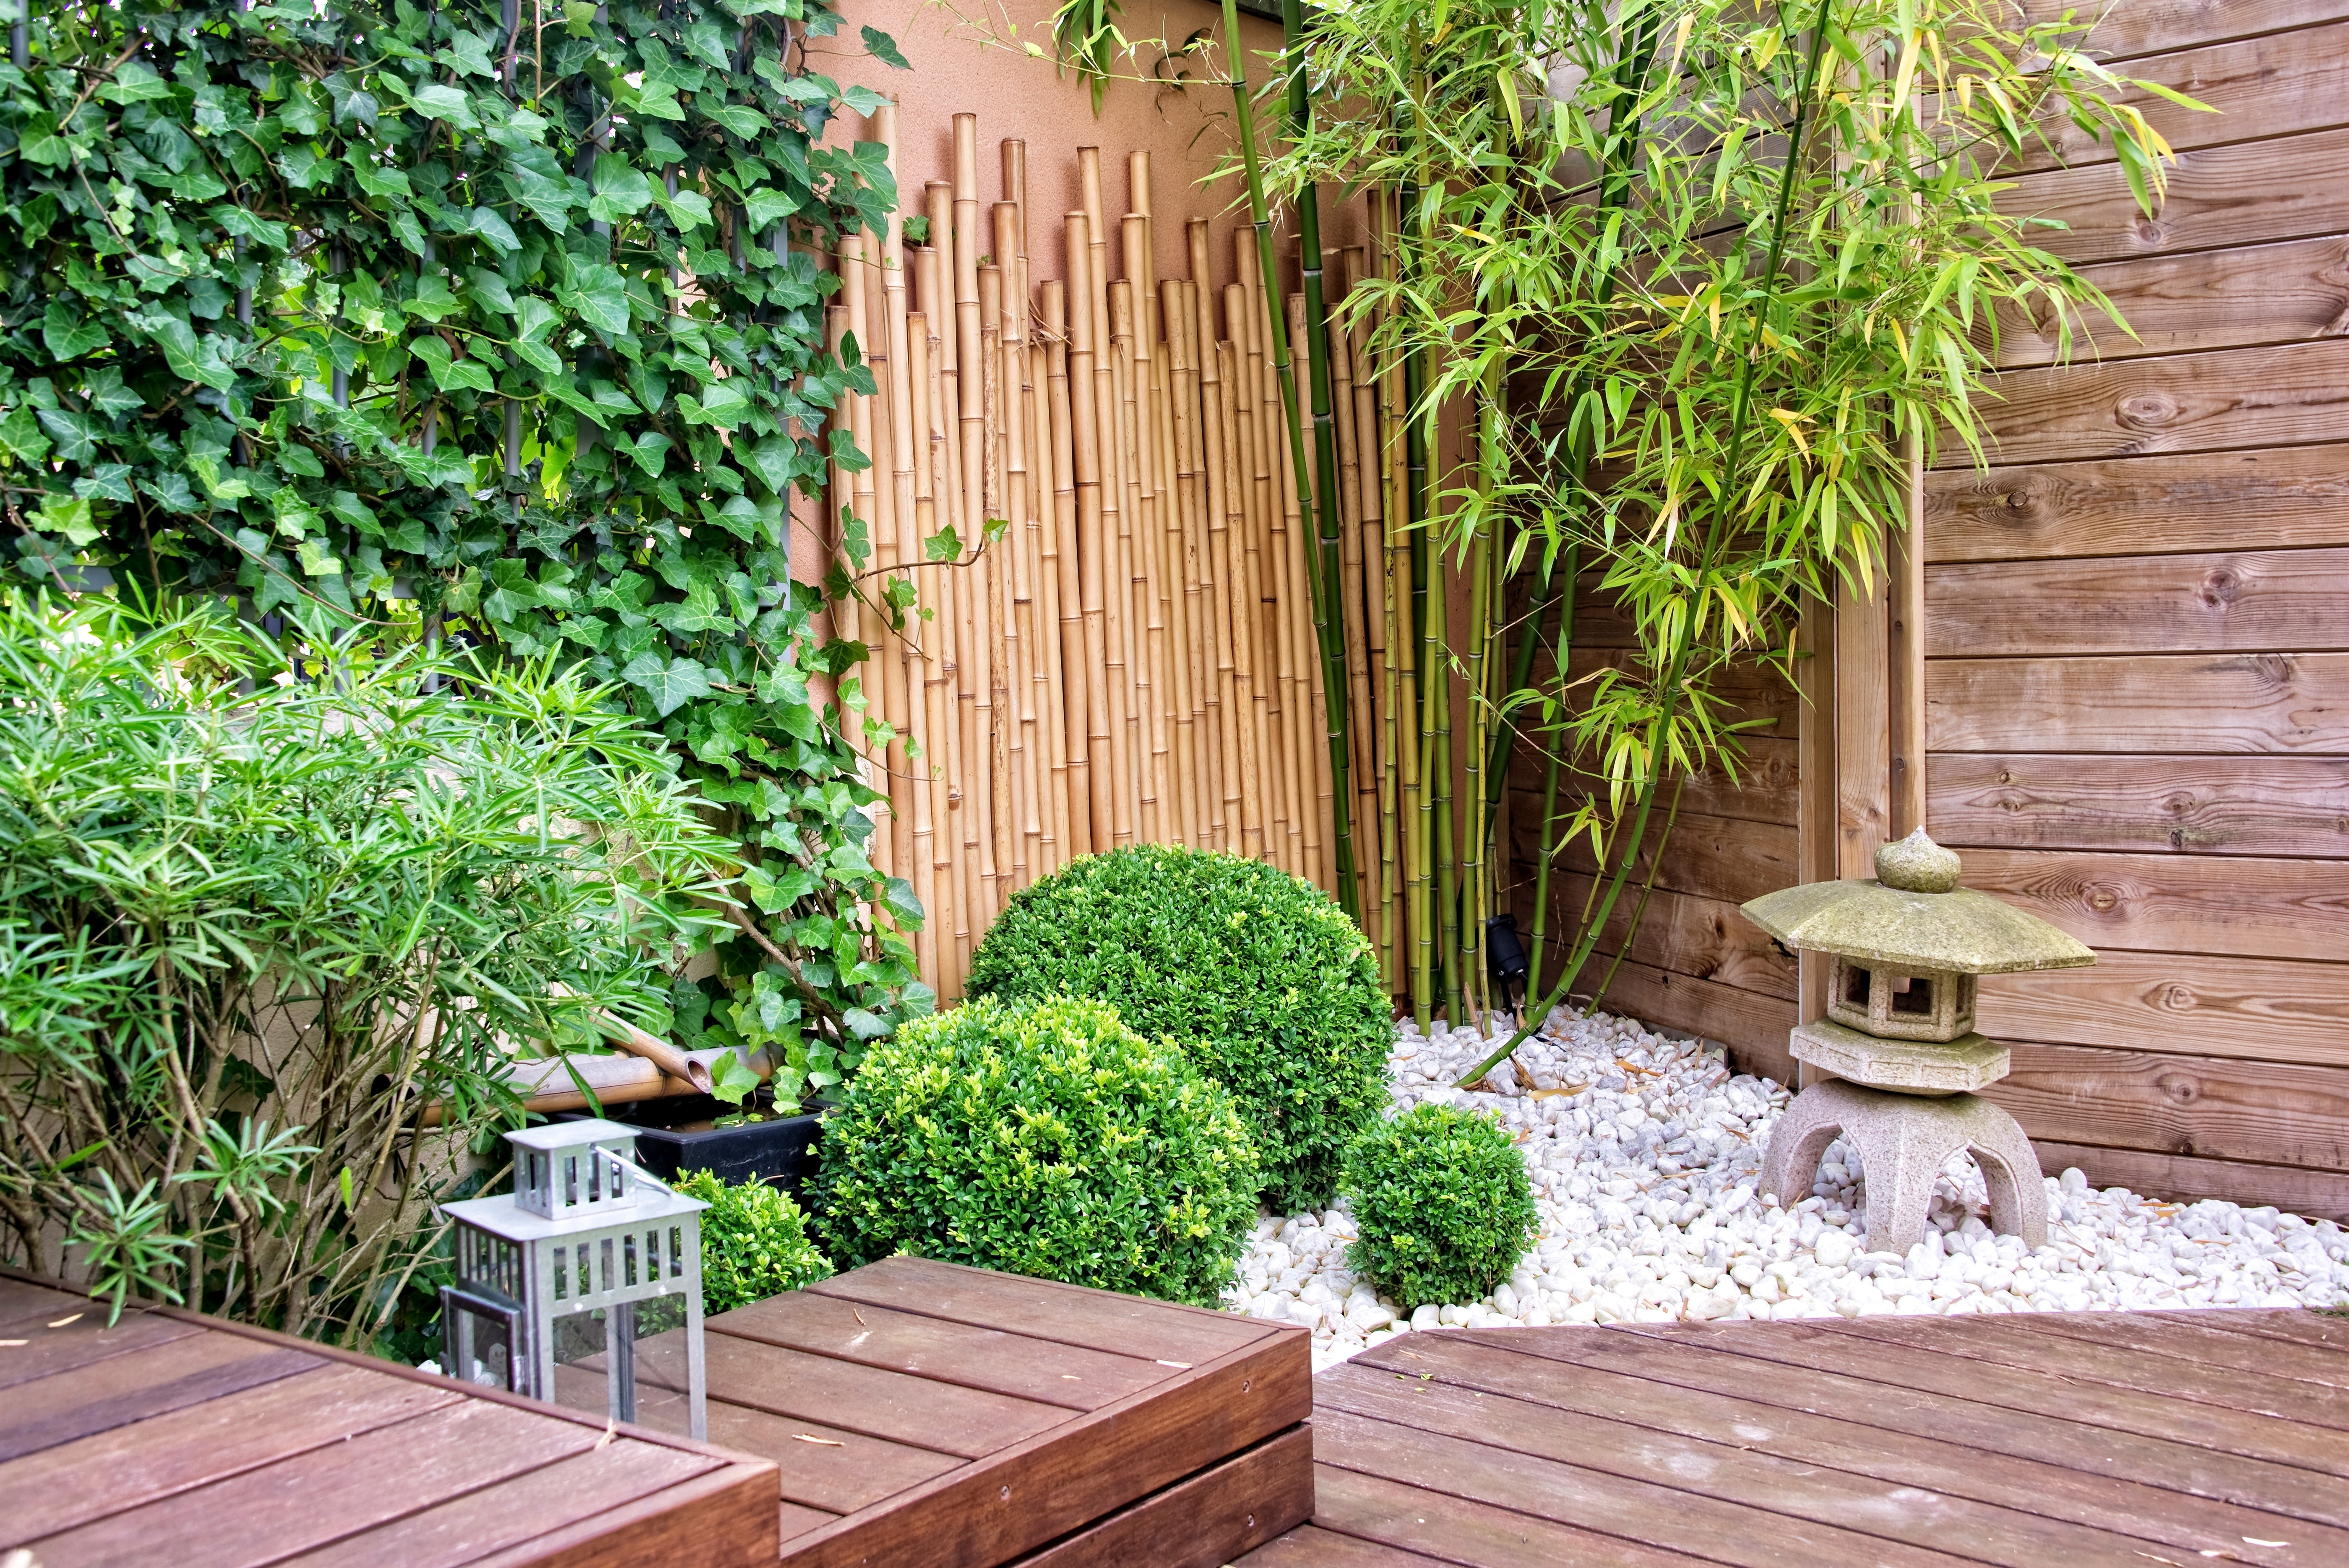 Japanese garden with bamboos and stone lantern